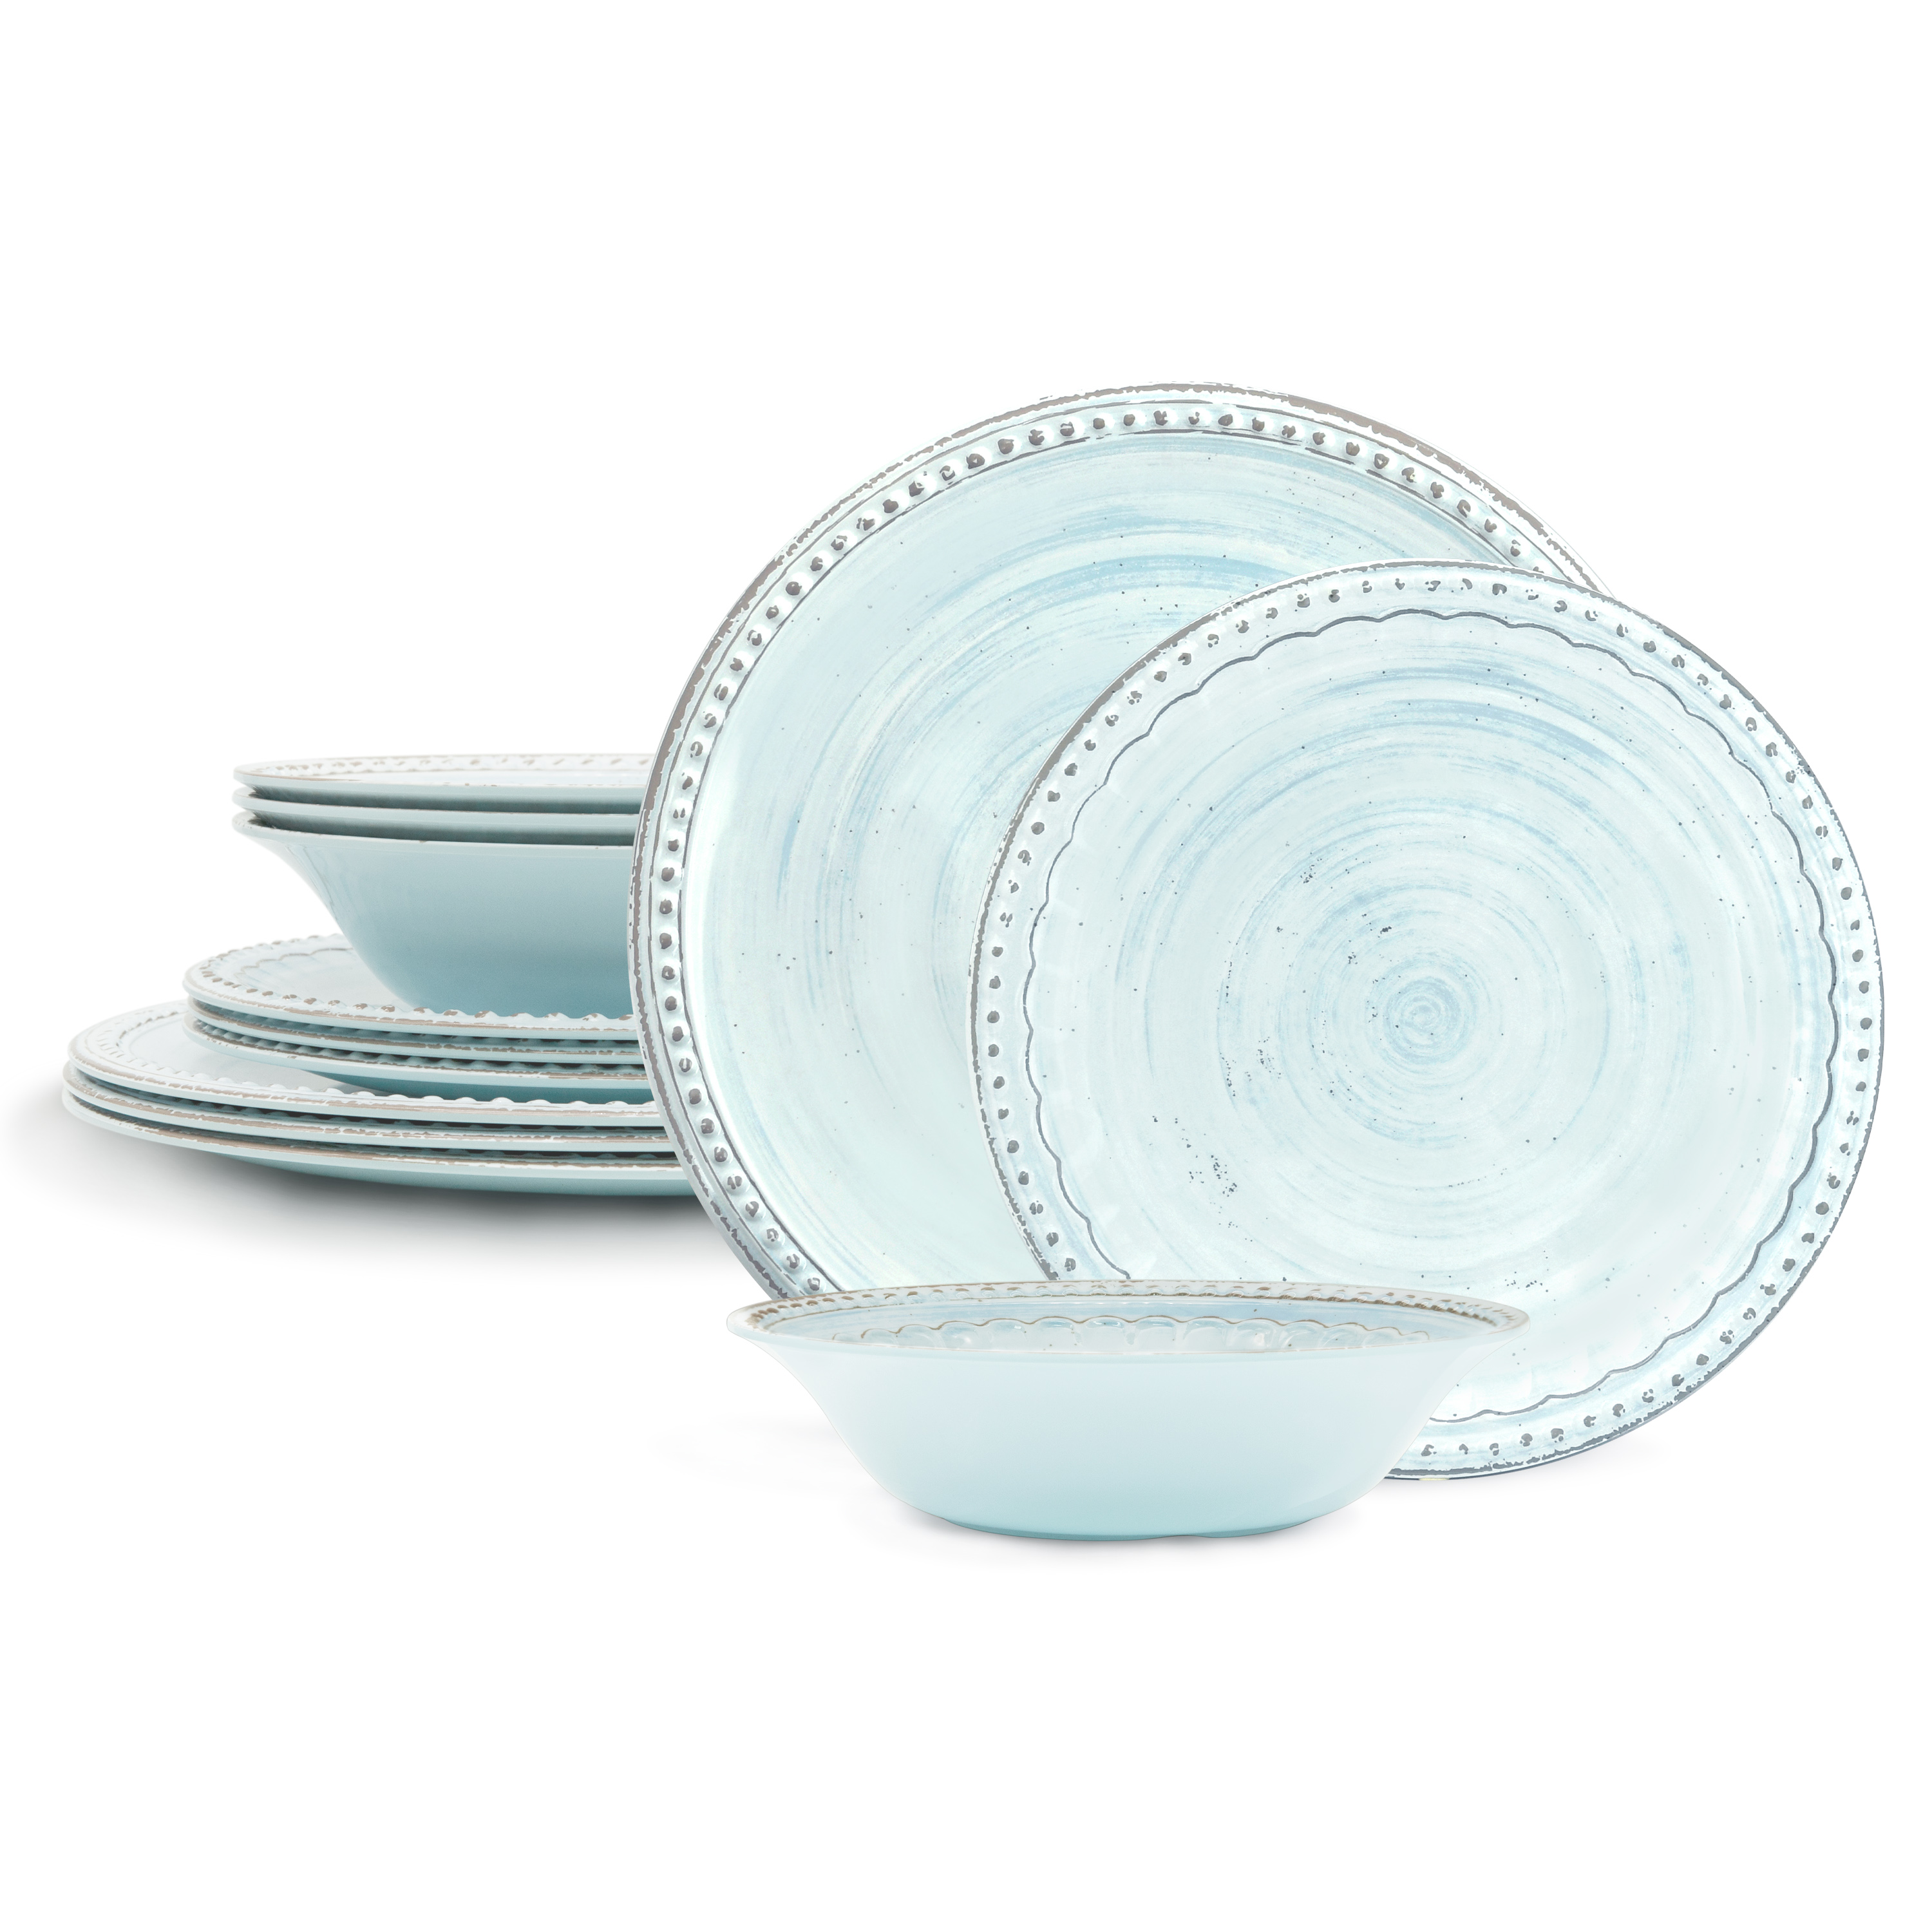 French Country Plate & Bowl Sets, Blue, 12-piece set slideshow image 1